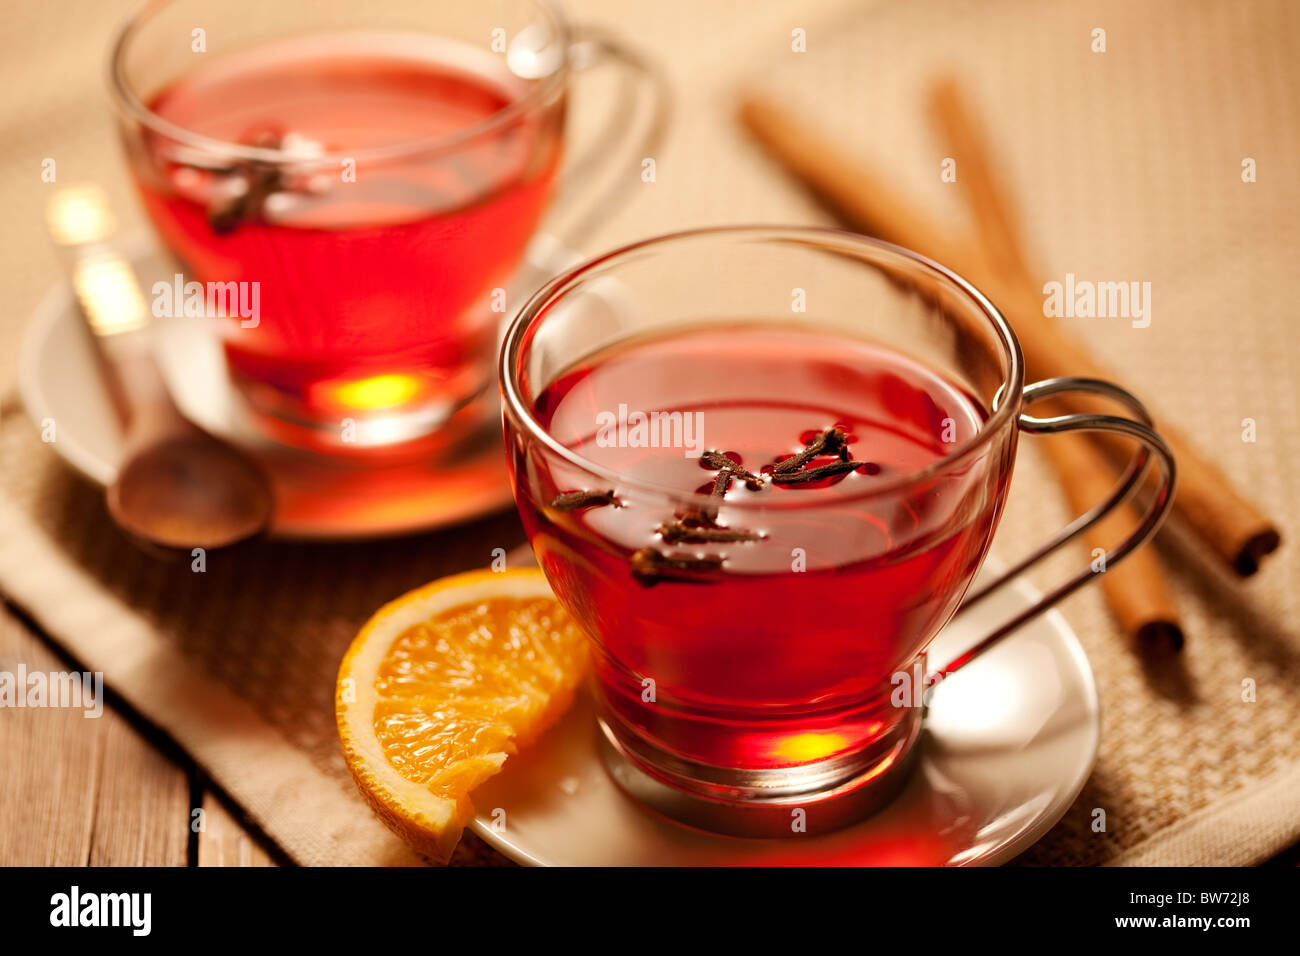 Hot toddy Photo Stock